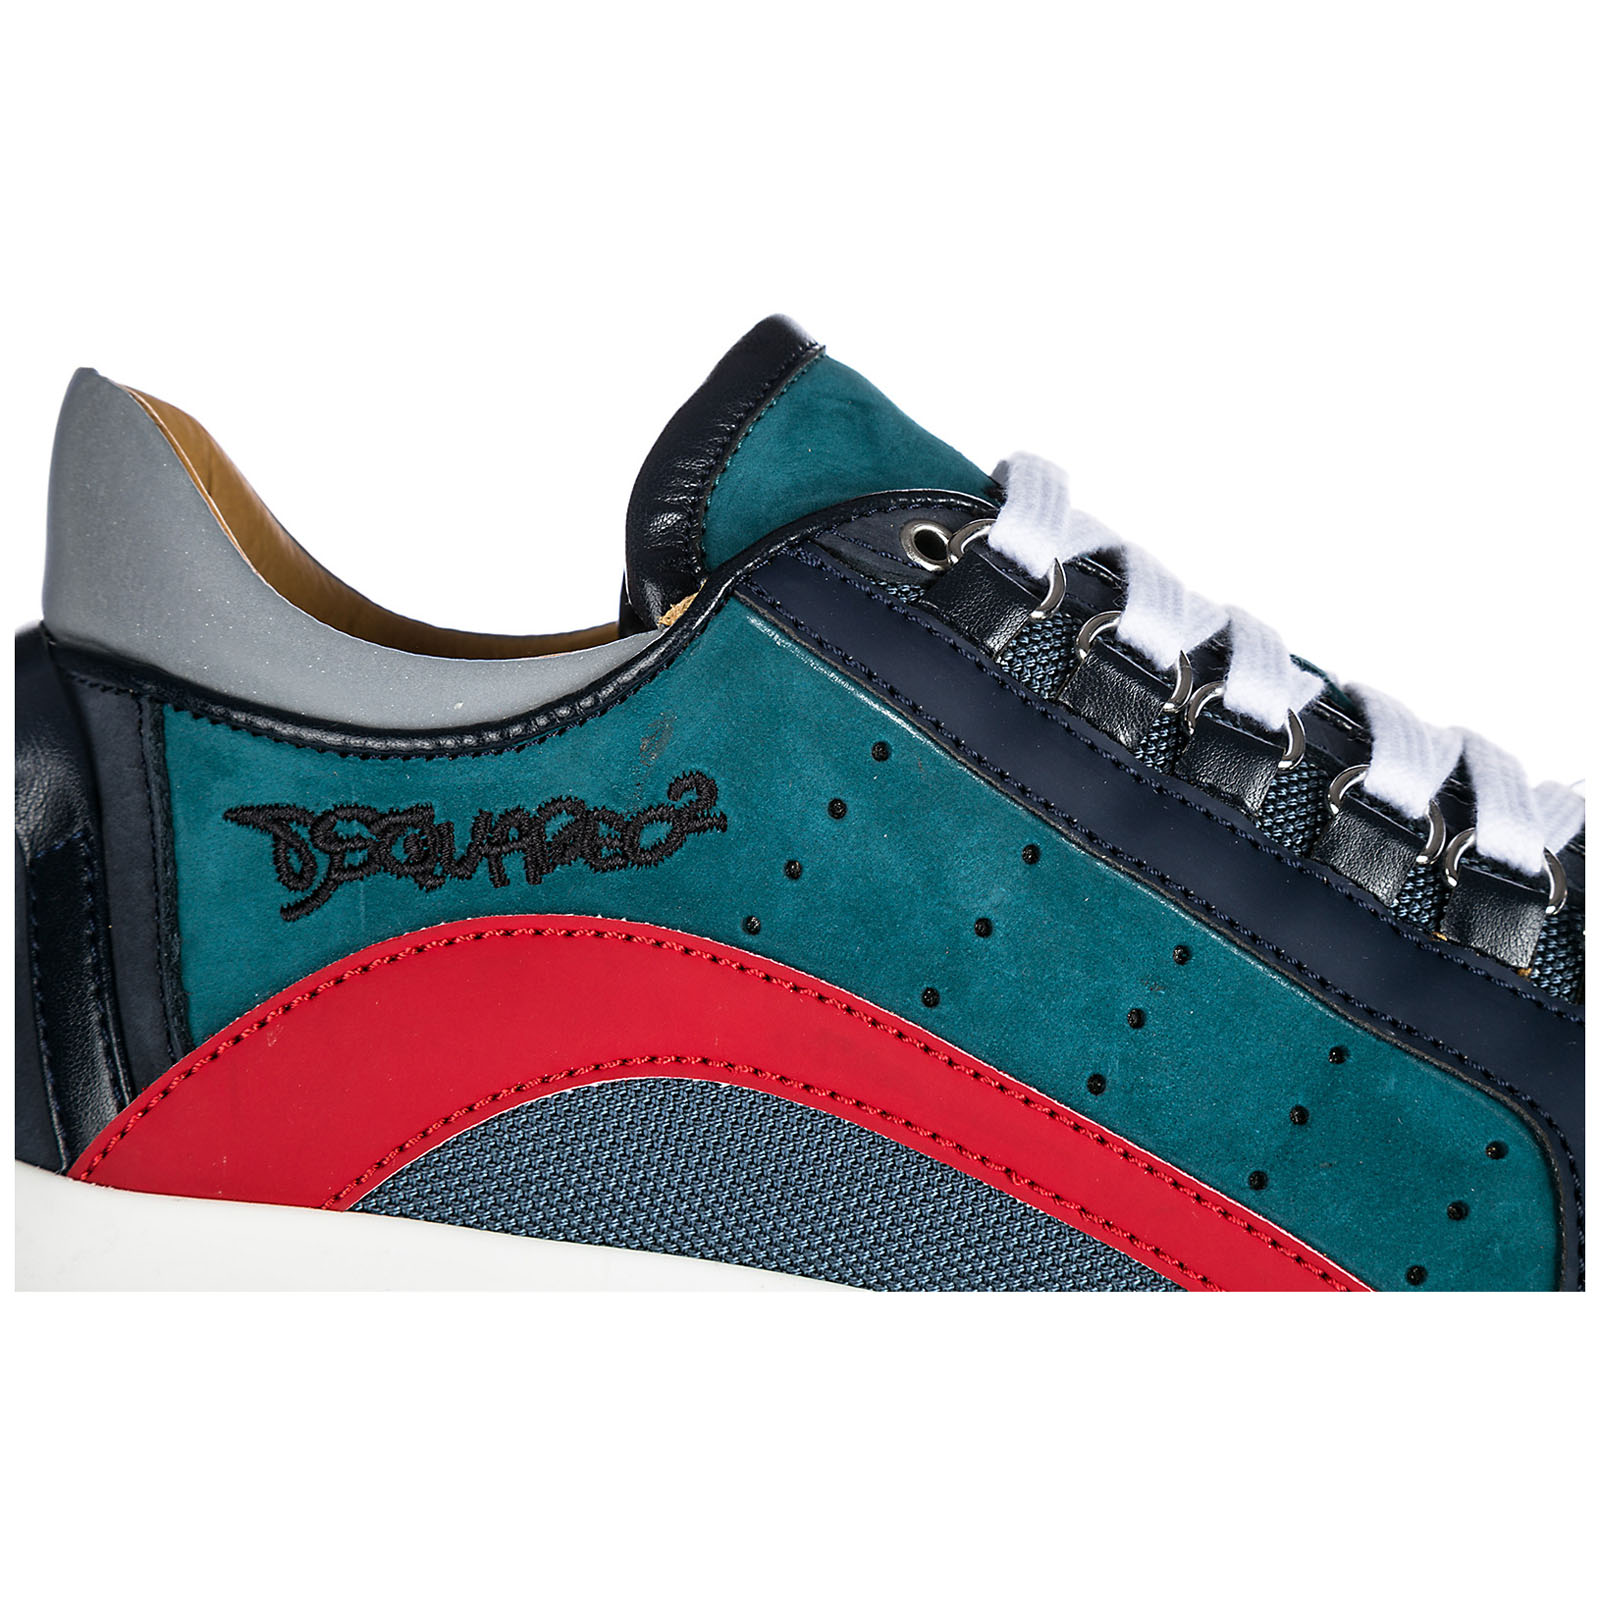 Sneakers Dsquared2 551 SNM040471800001M227 blu - rosso  d6932992e30d